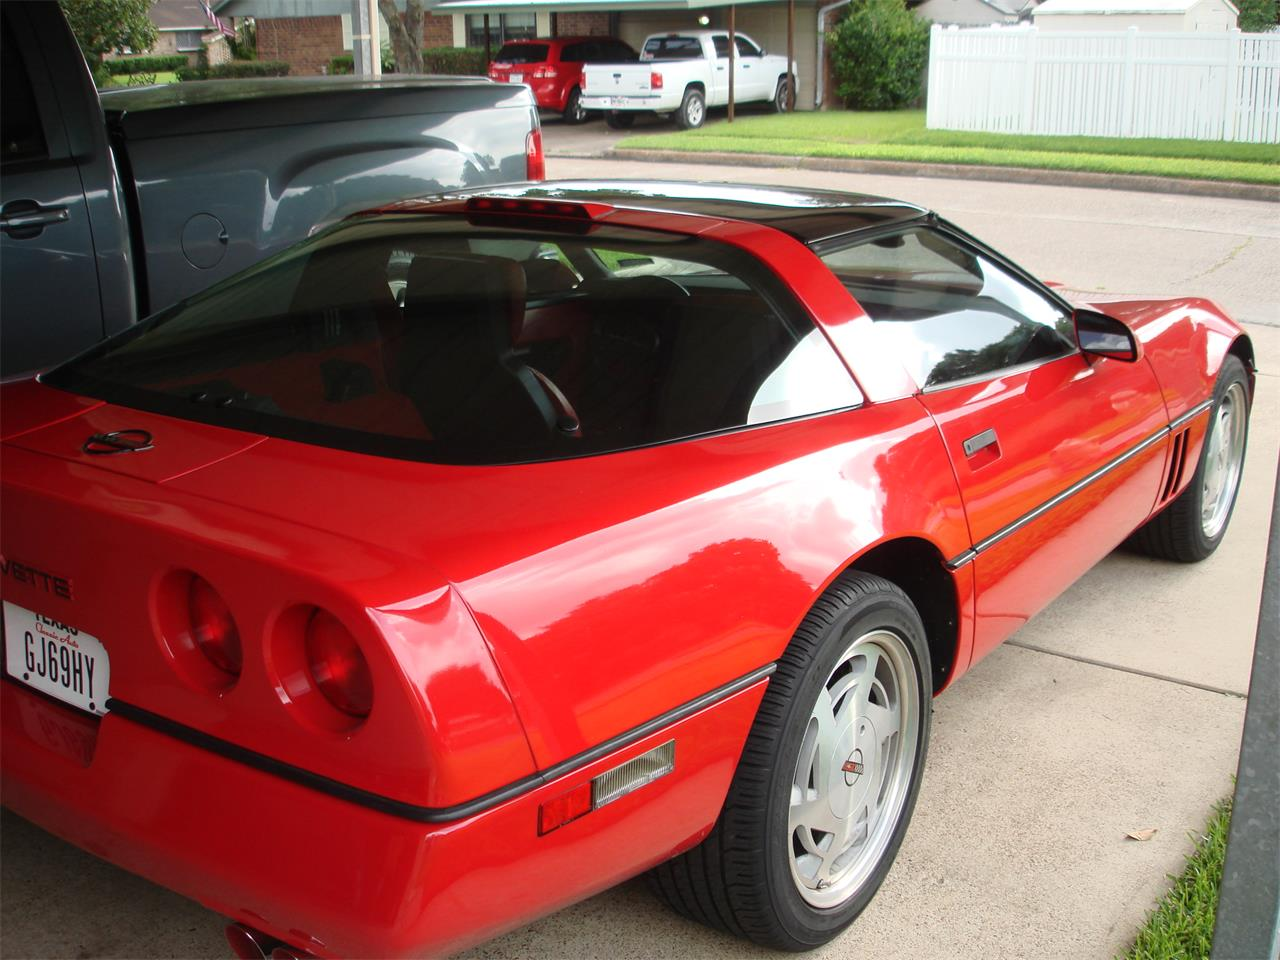 Large Picture of 1989 Corvette located in Texas - $19,500.00 Offered by a Private Seller - J7H4